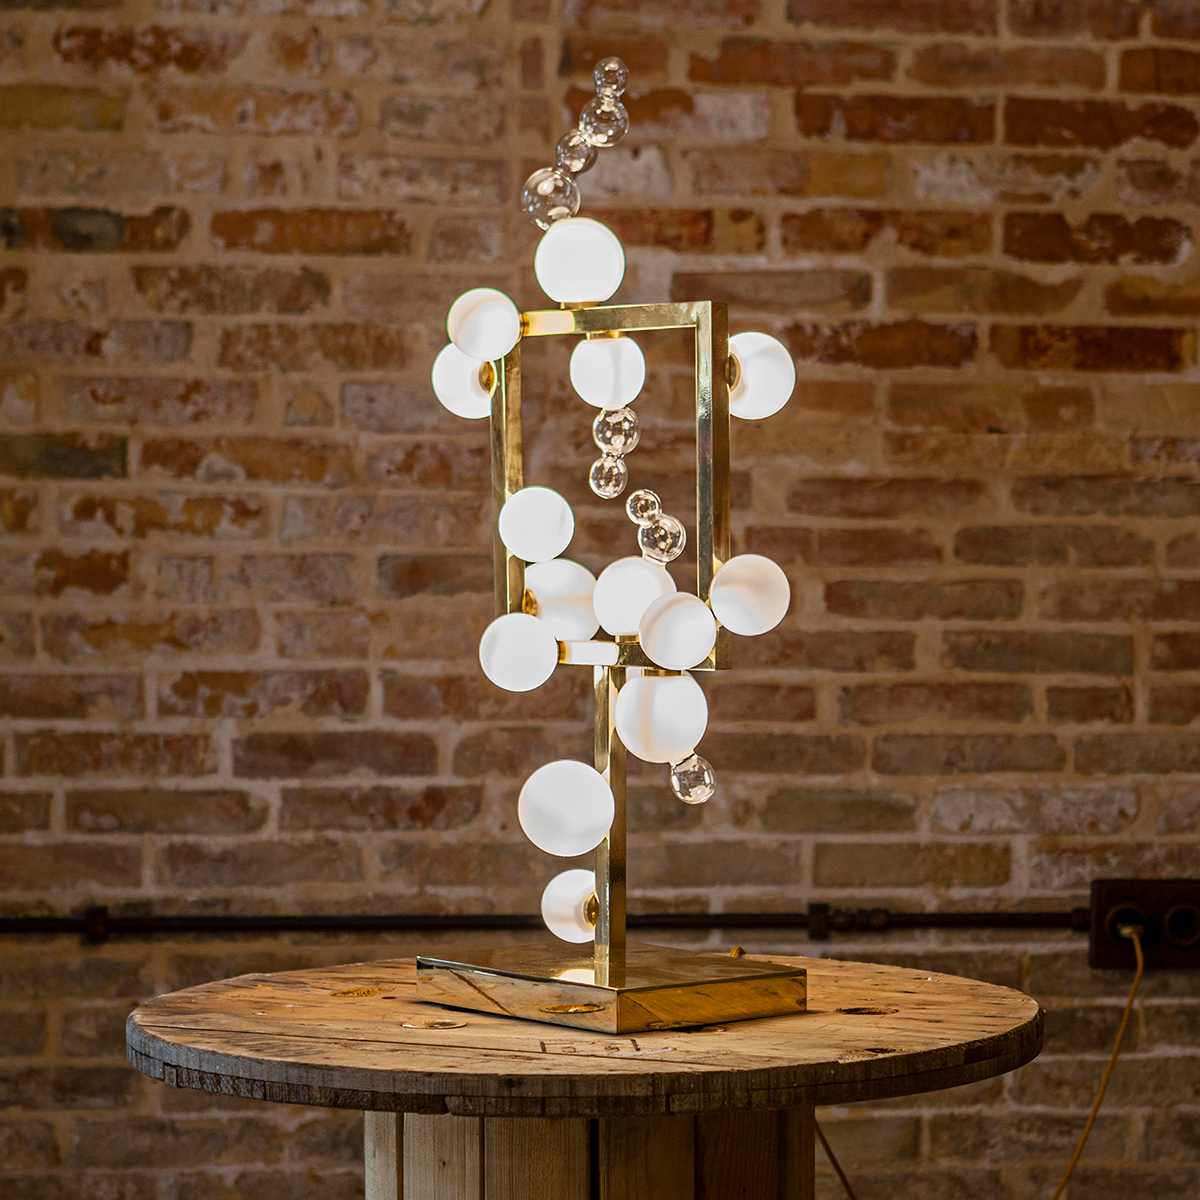 Handmade glass and brass table lamp design